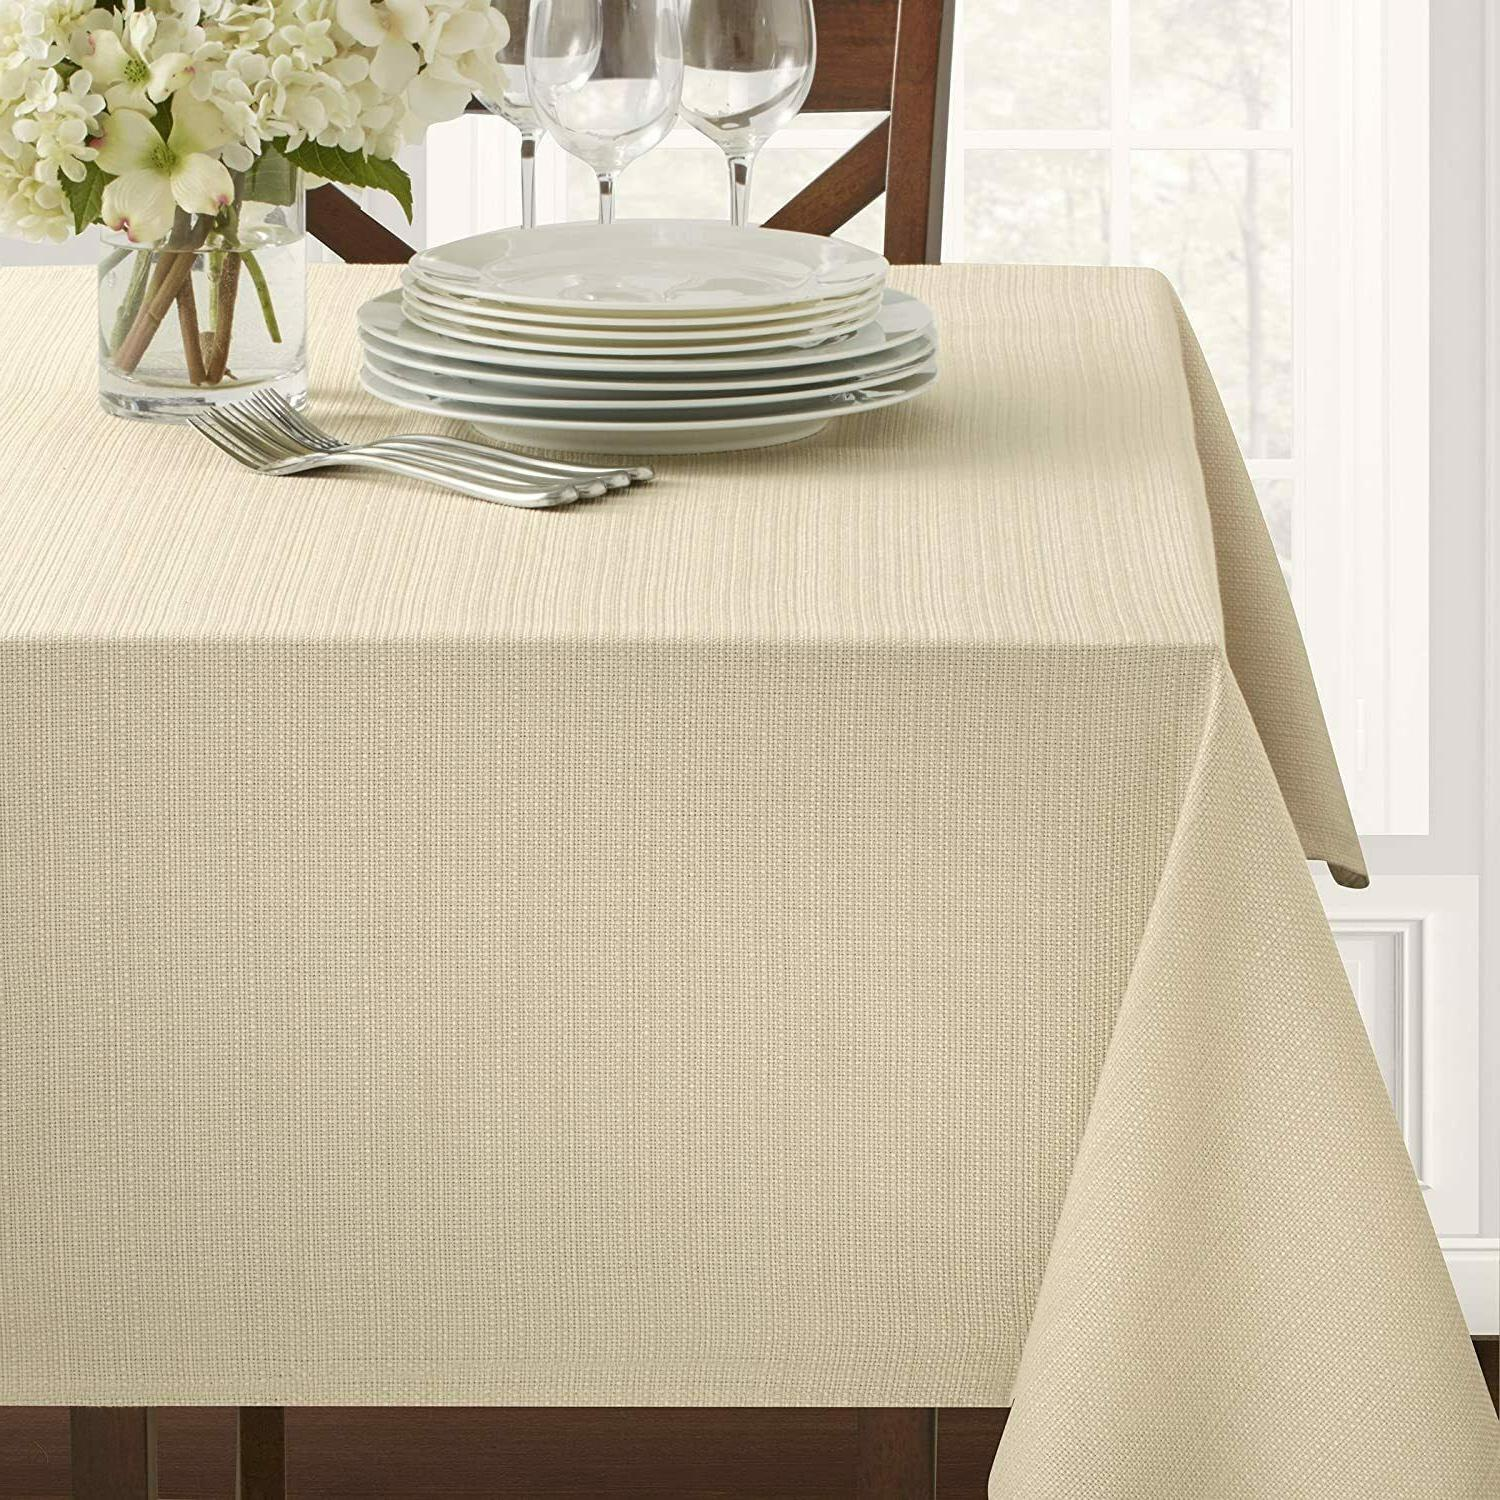 Benson Mills Textured Fabric Tablecloth  Cameron TABLECloth